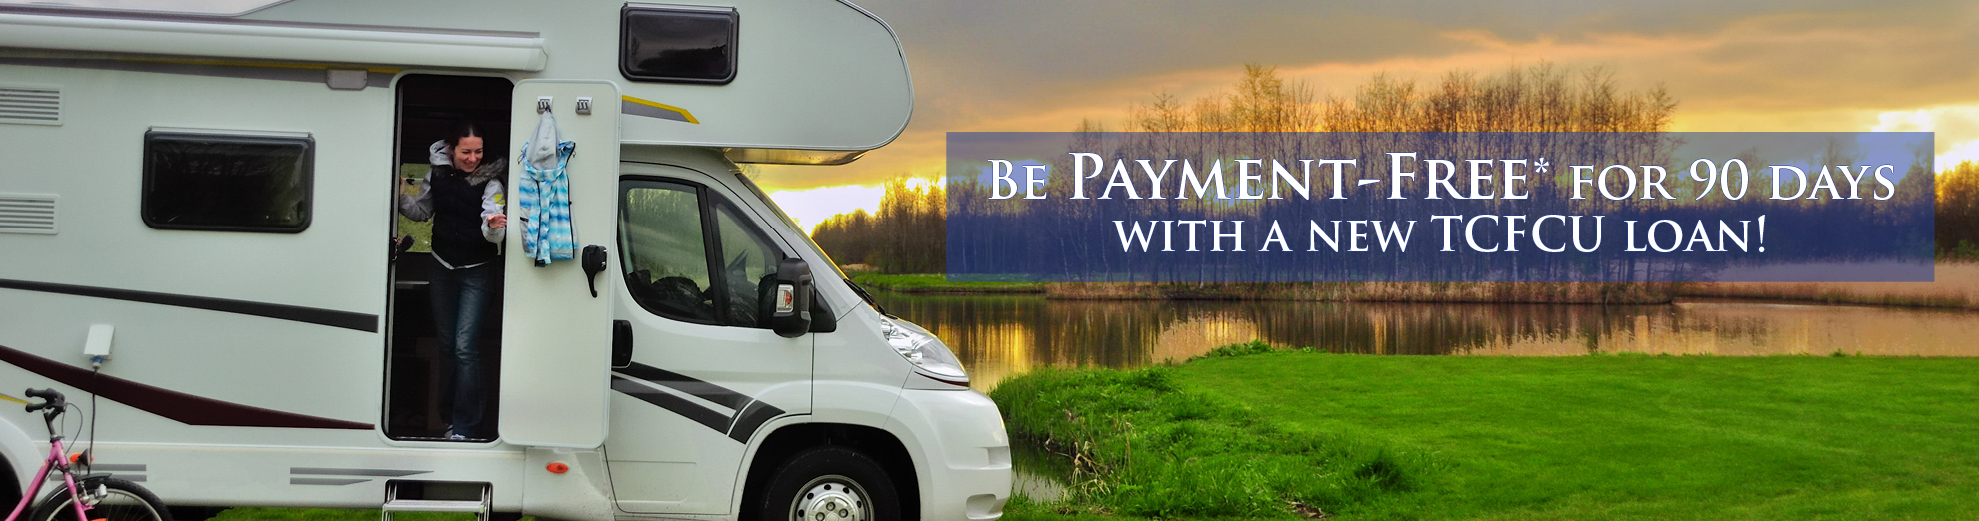 woman in camper for 90 day no pay promo